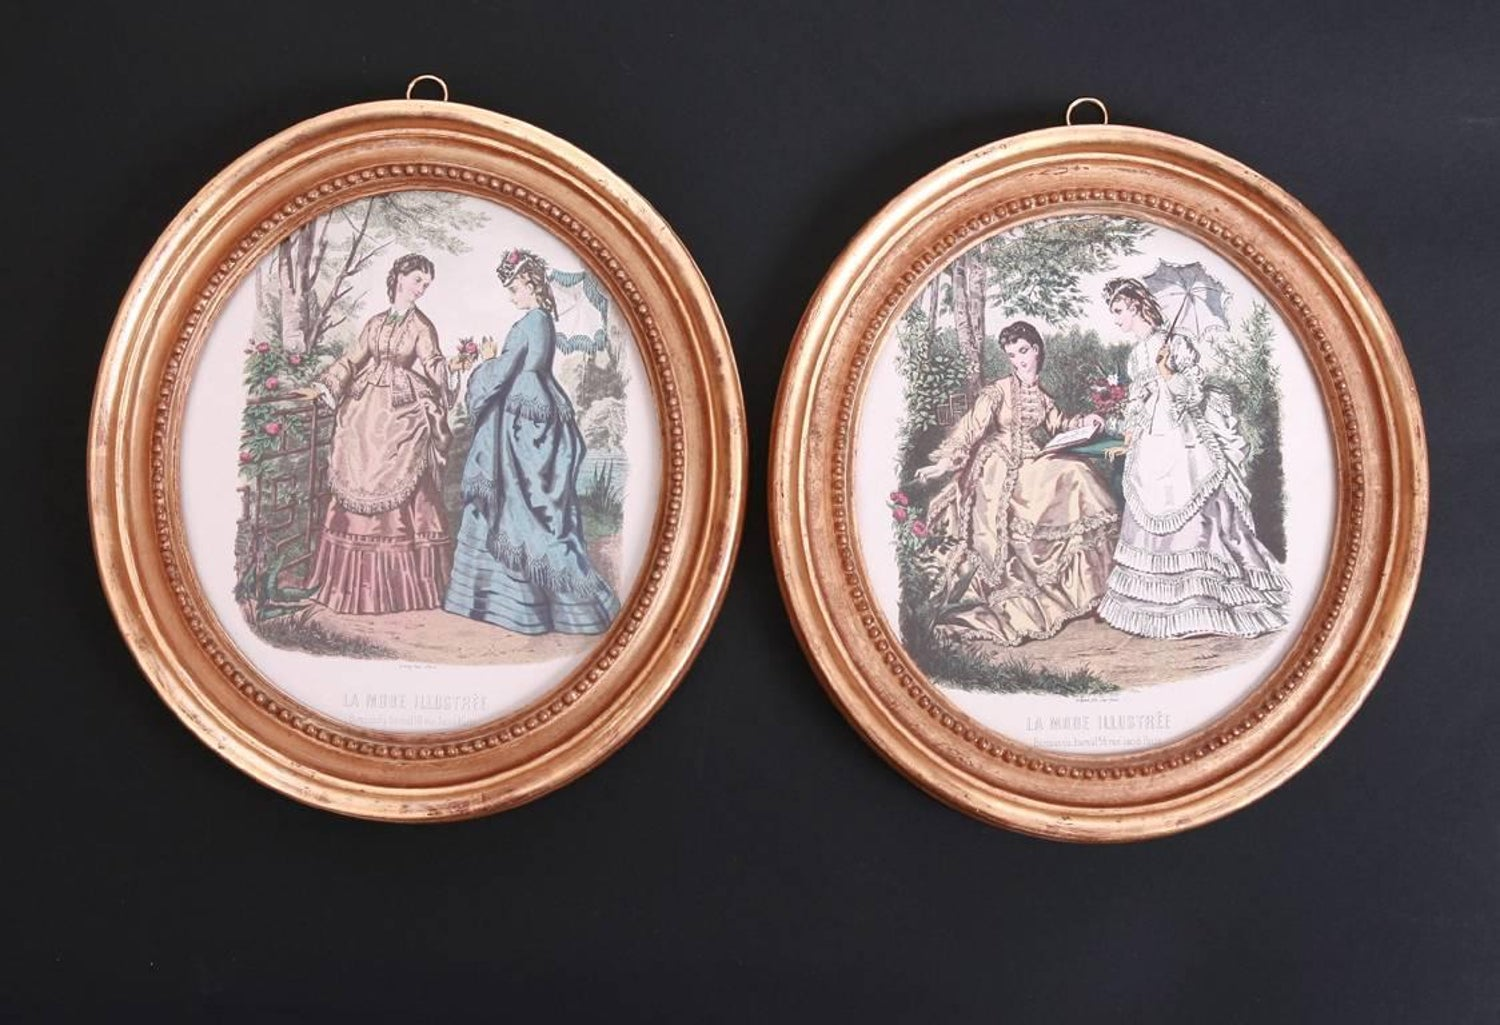 Pair of printed and hand colored fashion plates in antique oval gilt